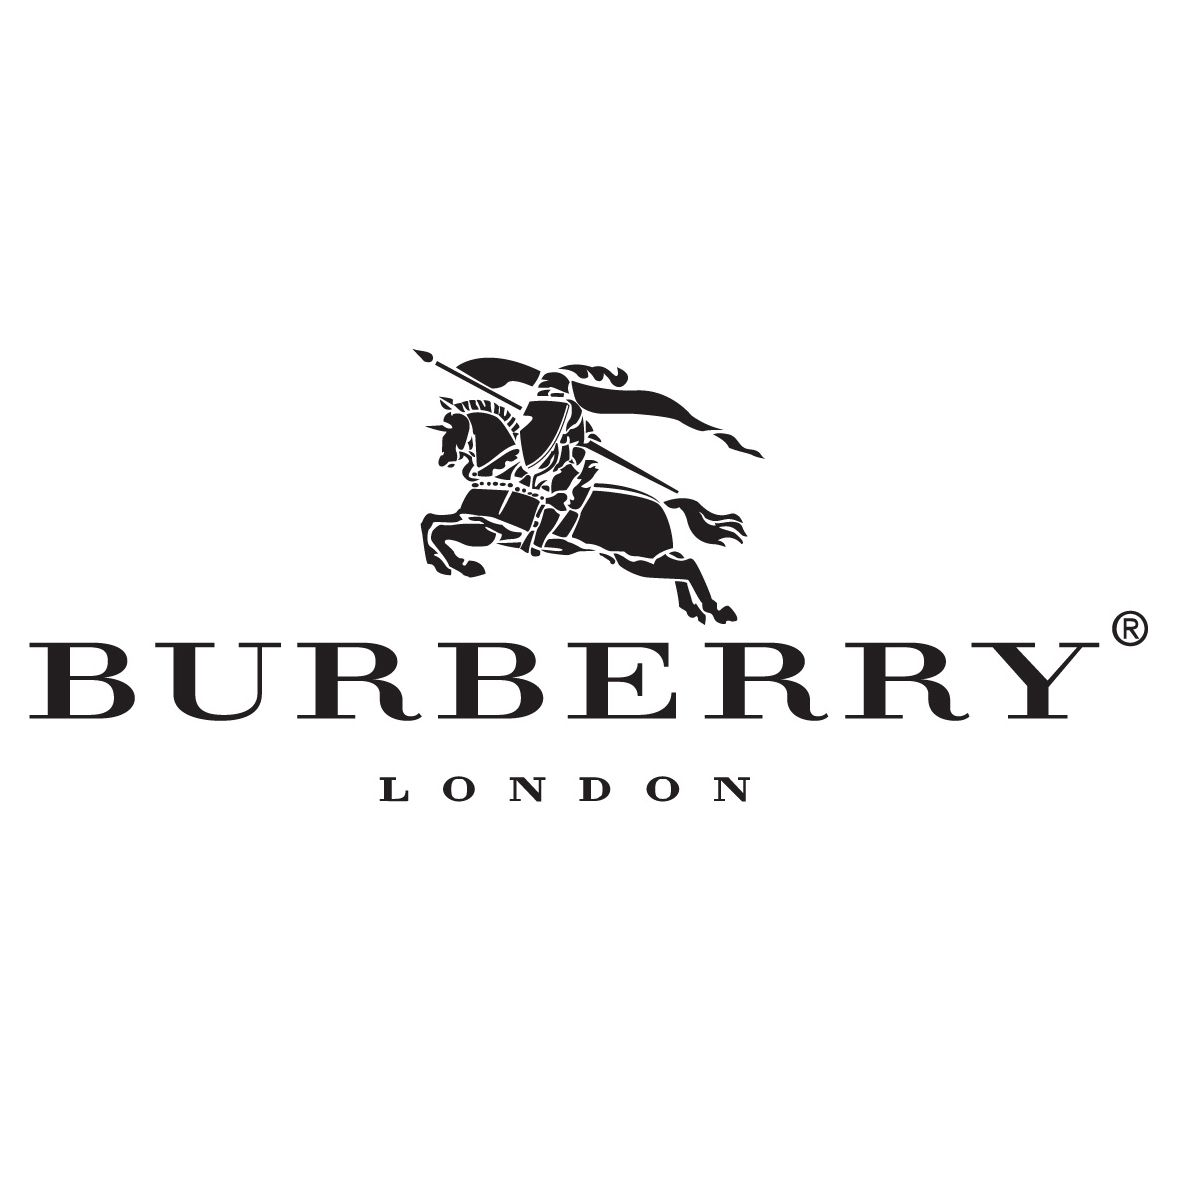 Burberry Is Most Famous For Its Trench Coat Which Was Designed By Founder